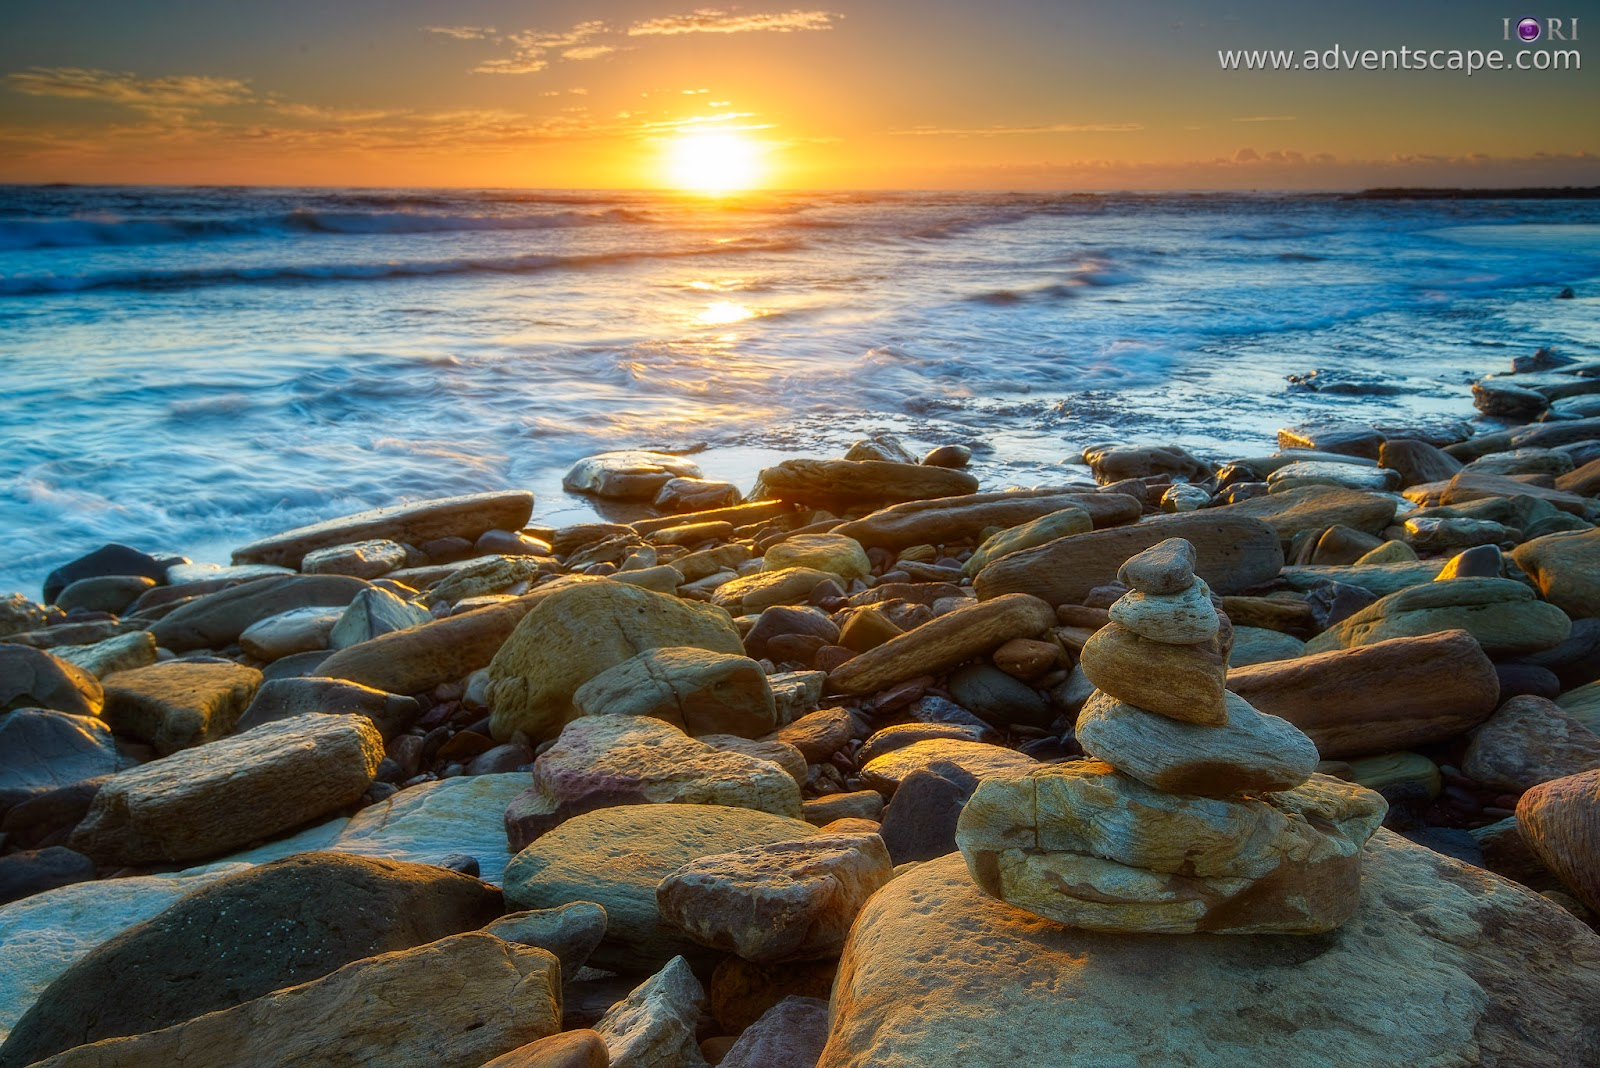 Philip AVellana, iori, adventscape, Australian Landscape Photographer, Collaroy, Long Reef, reserve, NSW, New South Wales, Northern Beaches, sunrise, golden hour, tasman sea, Australia